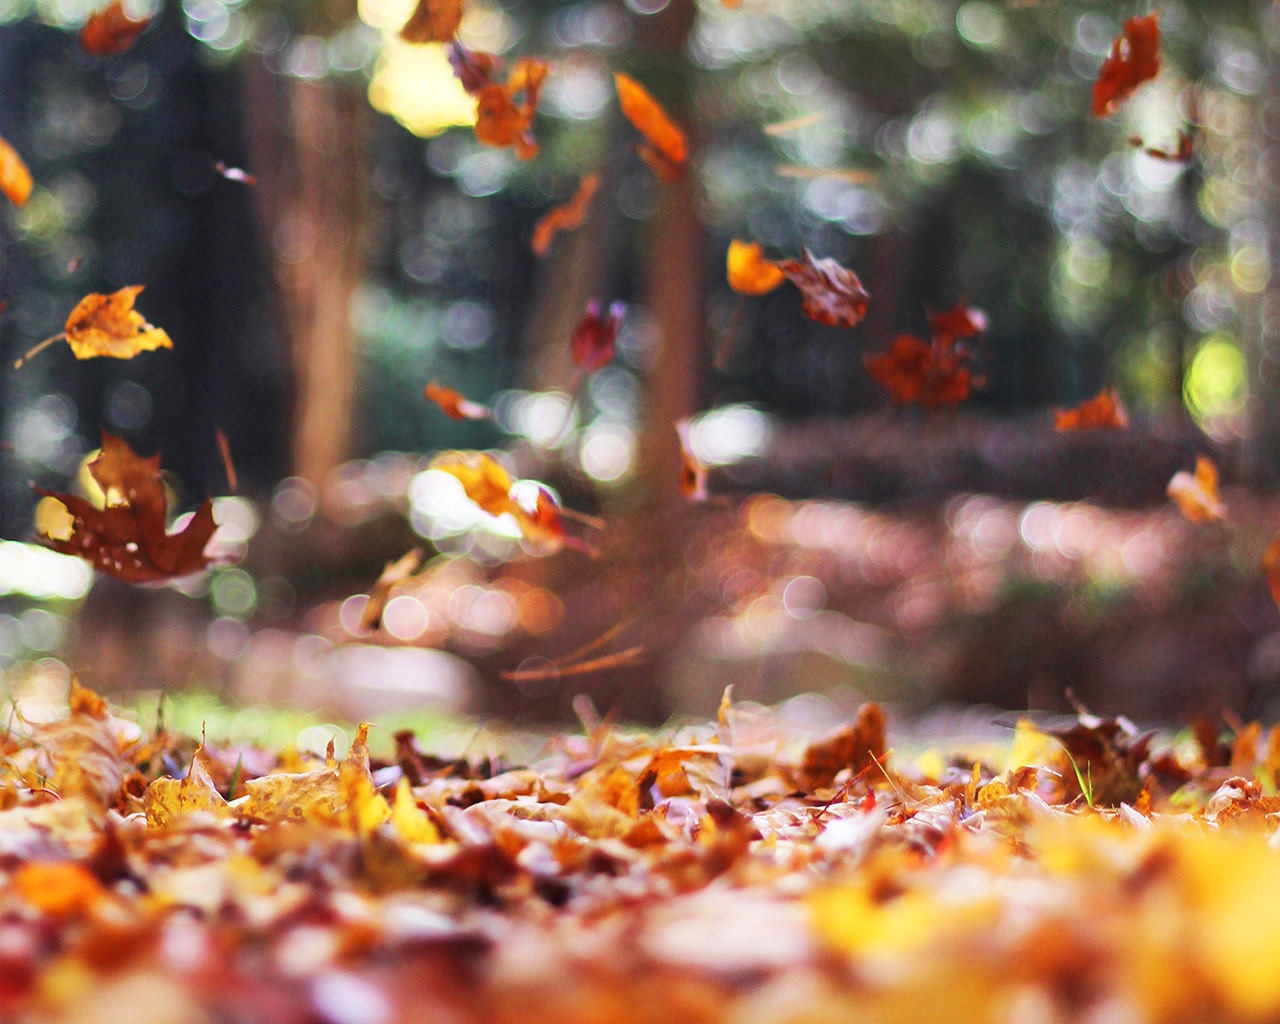 wallpaper for desktop, laptop | mw77-fall-leaves-nature ...